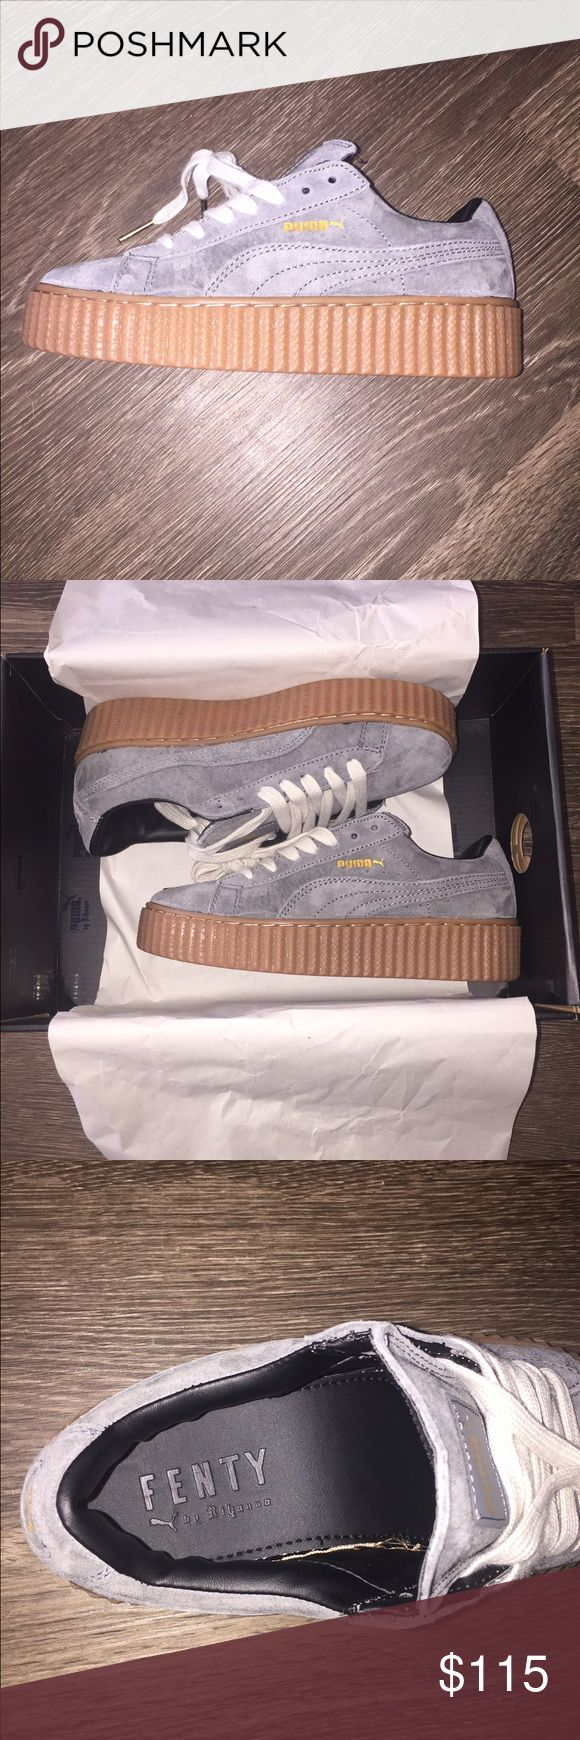 Brand new Fenty Puma Creepers gray suede I bought these shoes online but they send me the wrong size. Size is women's 4.5 Puma Shoes Sneakers